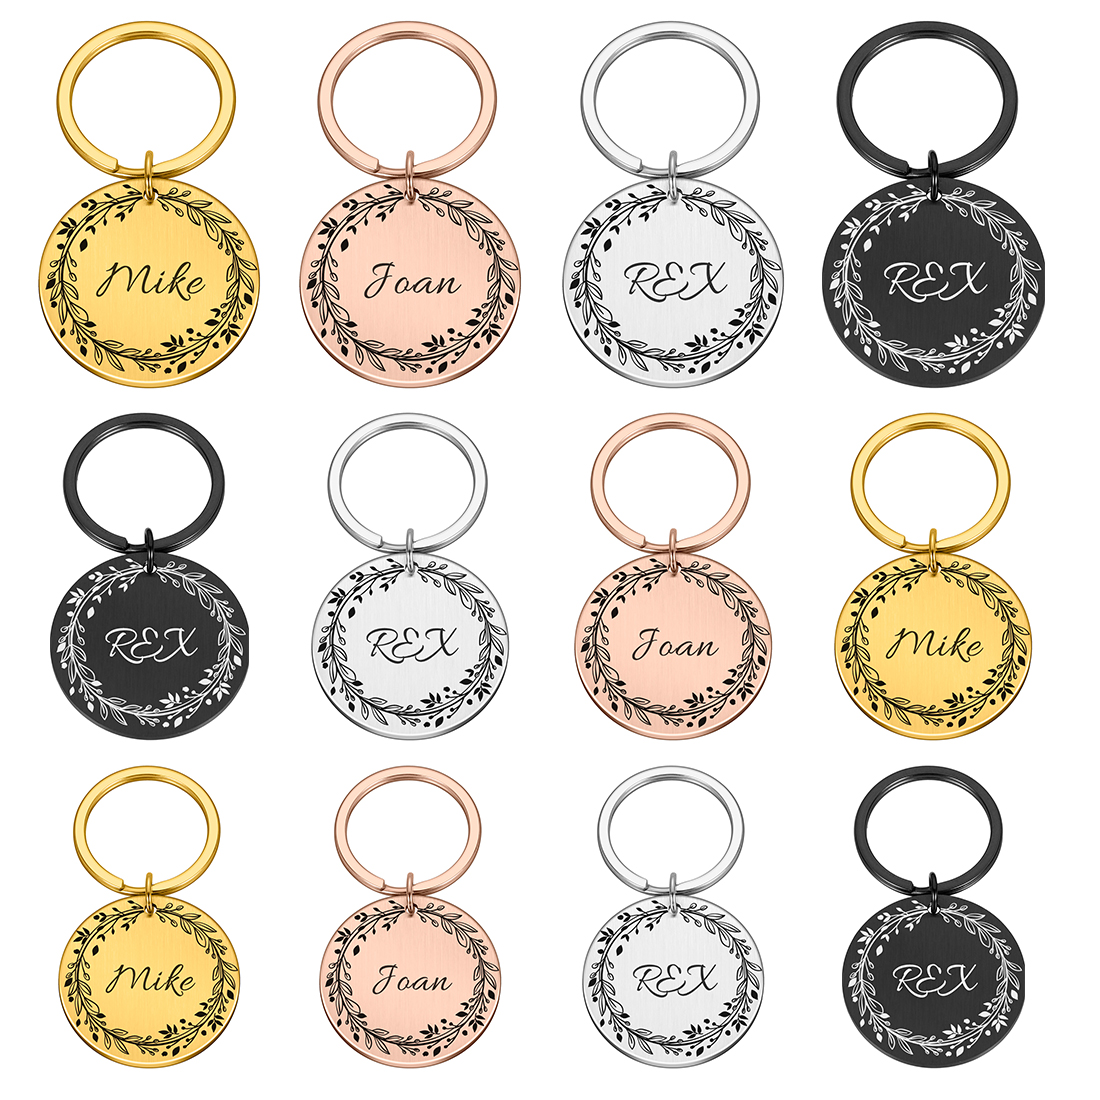 Personalized Dog Cat Pet ID Tags  Engraved Cat Puppy  Pet ID Name Number Address Collar Tag Pendant Pet Accessories